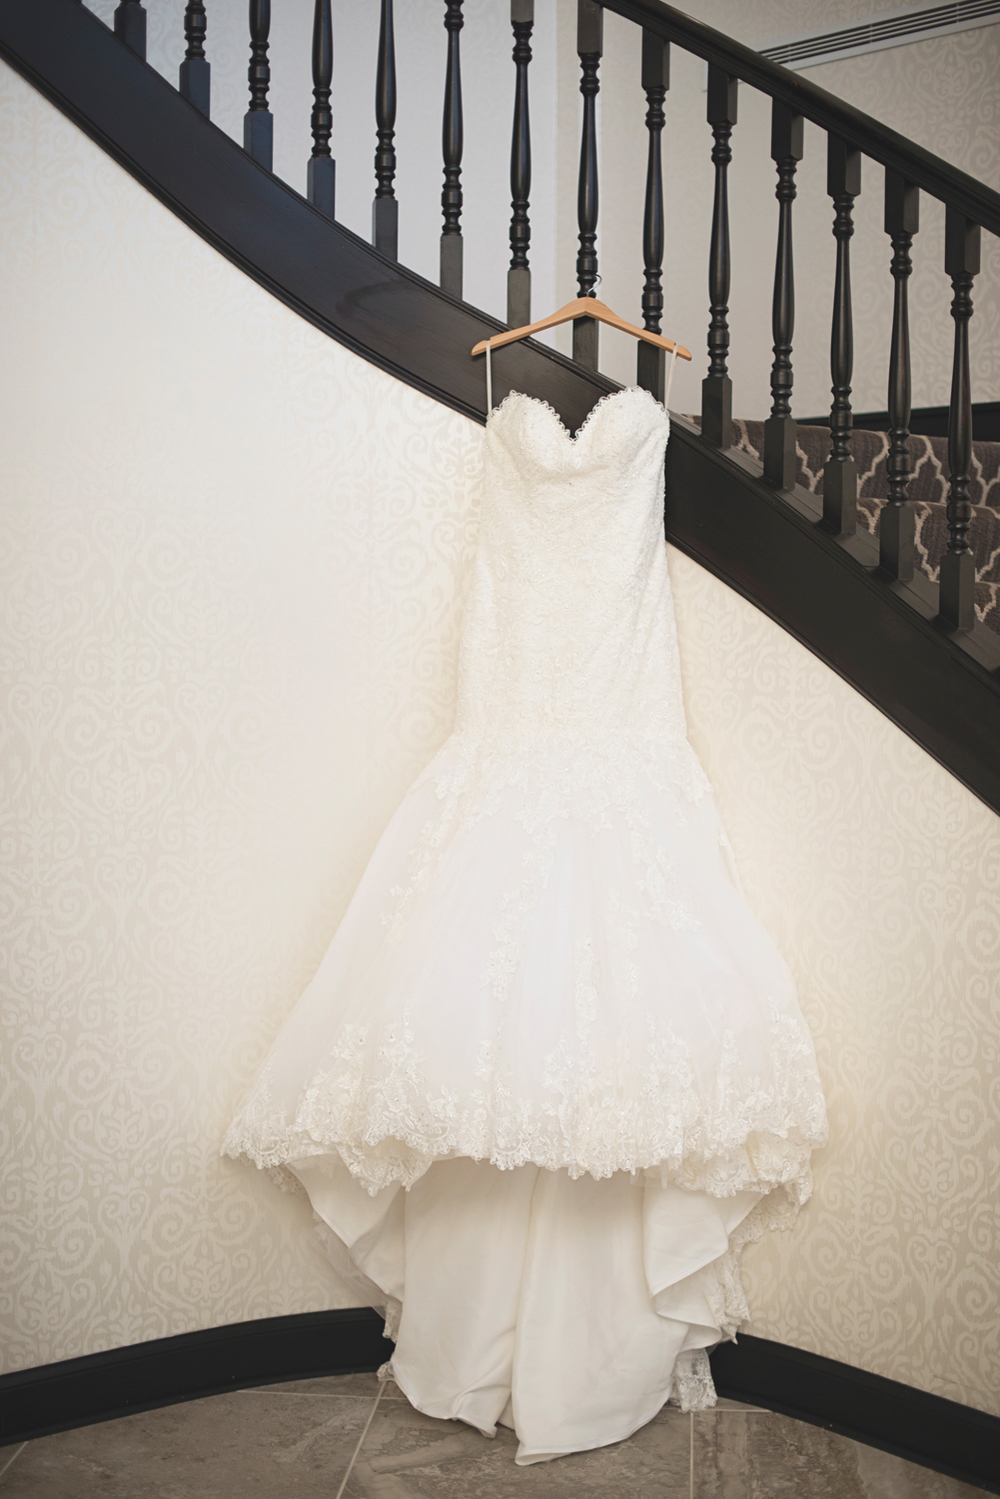 Kiln creek golf club wedding valentine 39 s day inspiration for Wedding dresses in hampton roads